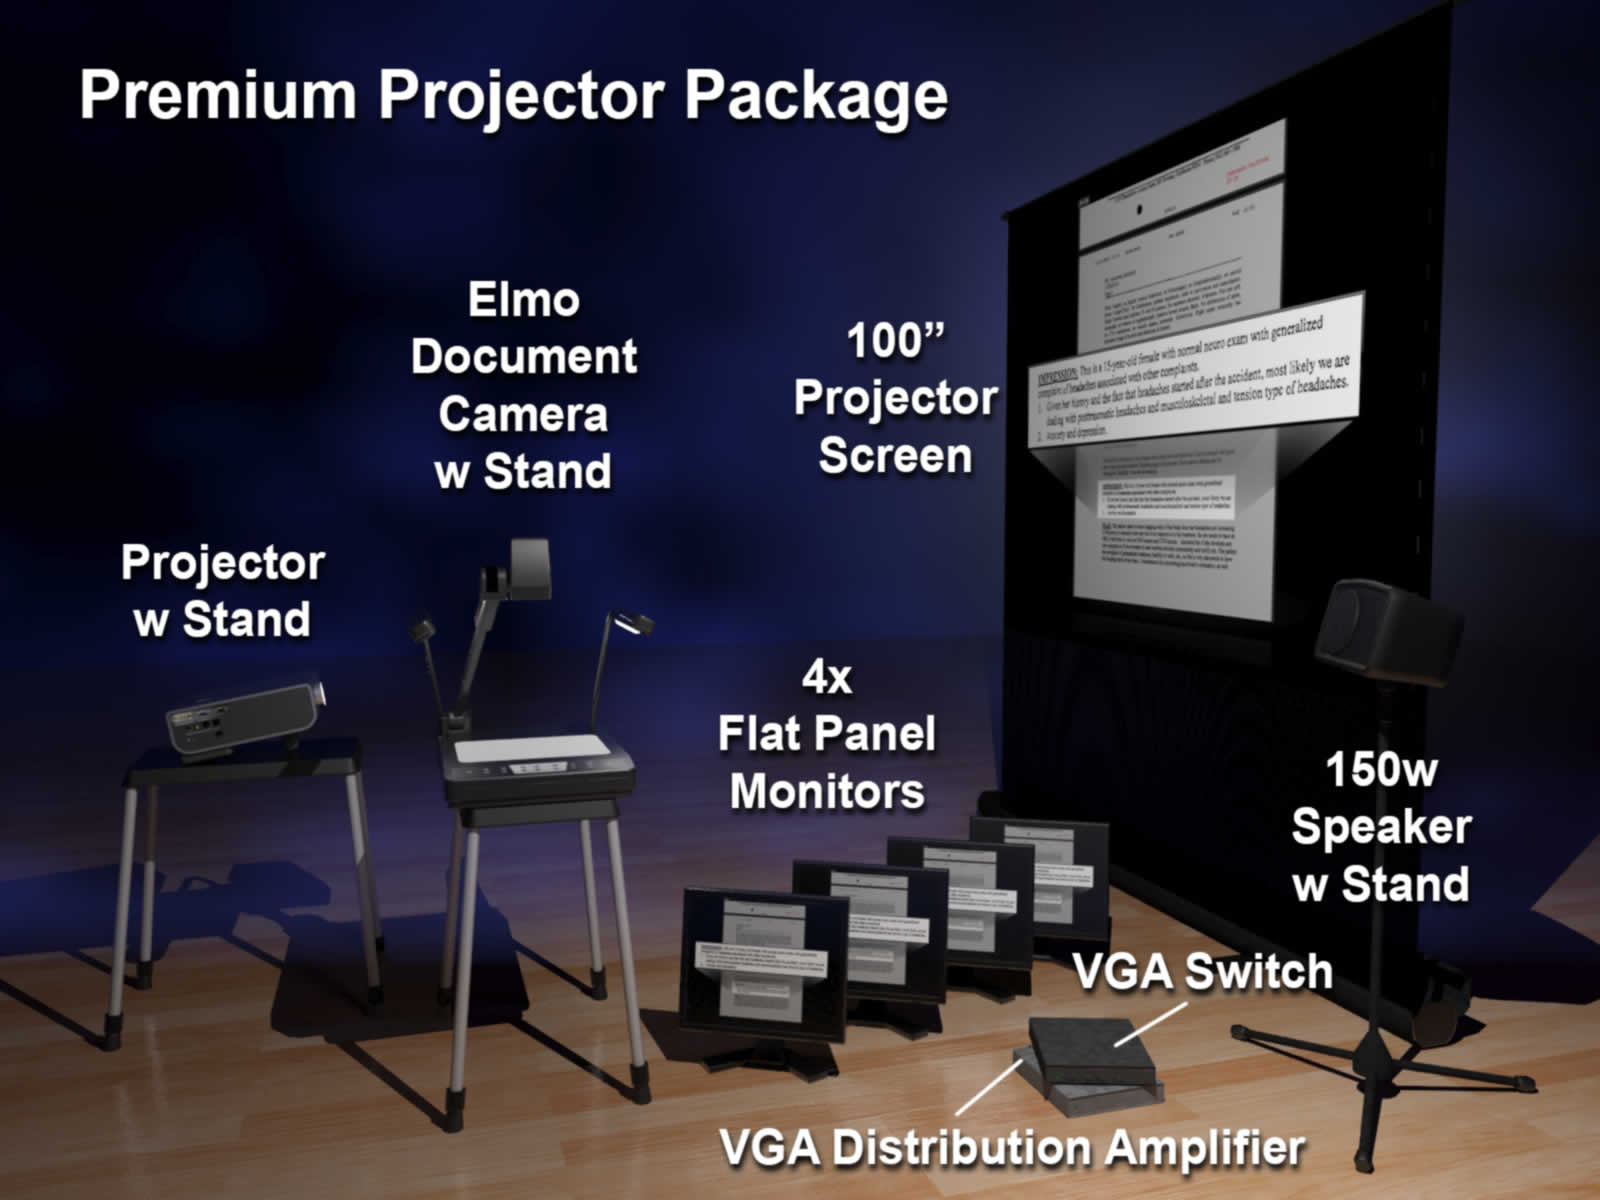 Premium Projector Package